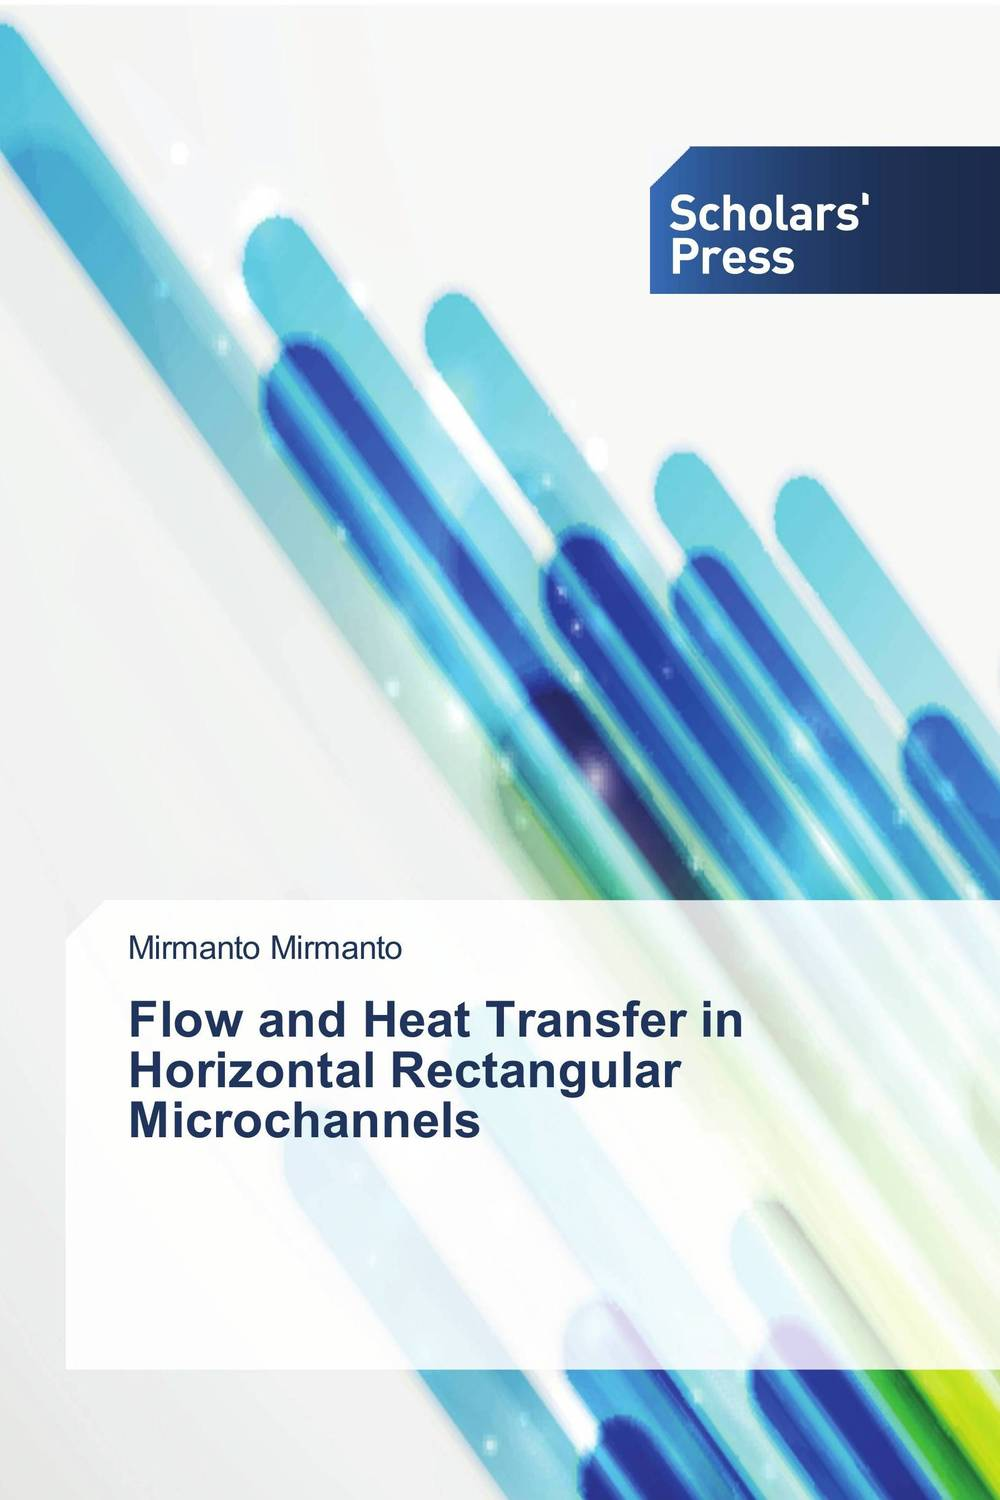 Flow and Heat Transfer in Horizontal Rectangular Microchannels economizer forces heat transmission from liquid to vapour effectively and keep pressure drop down to a reasonable level